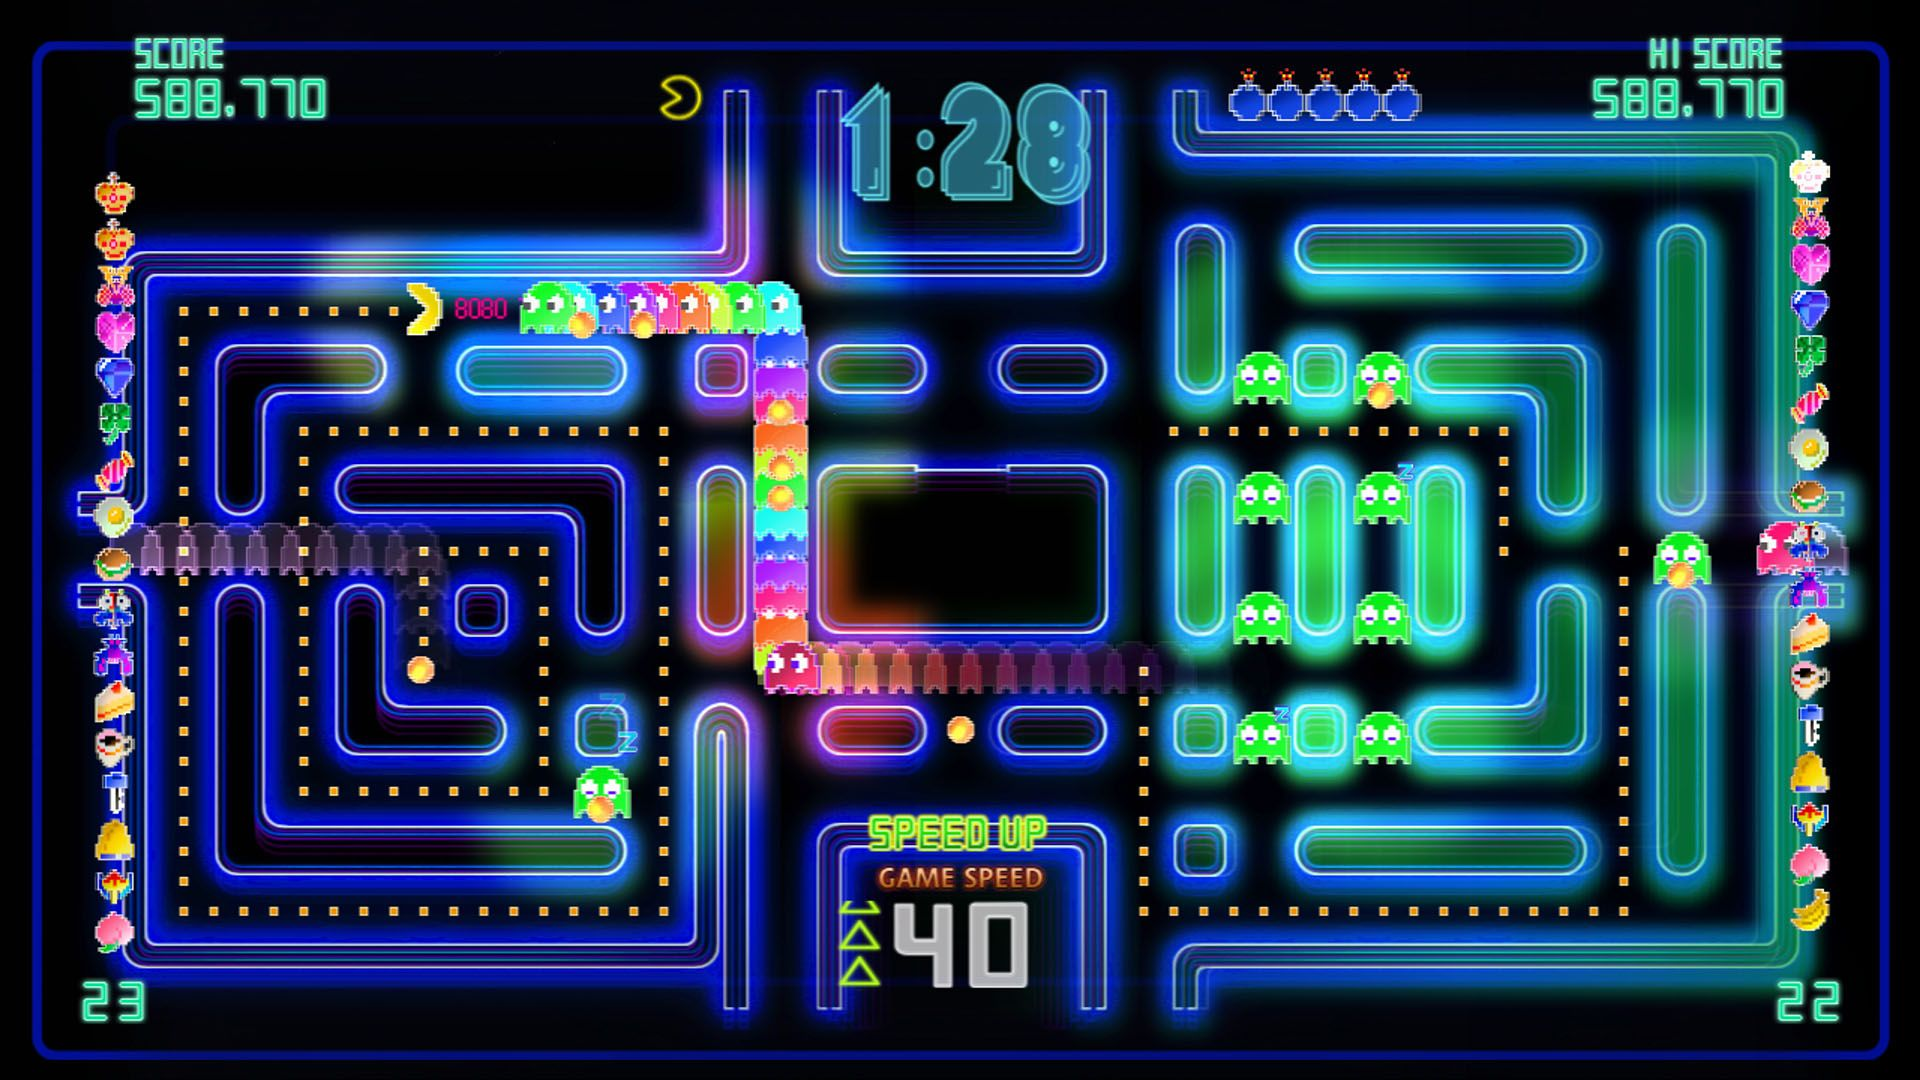 Must see Wallpaper Home Screen Pacman - 365567f2b9400cabb92feff2a1b374fc  Trends_346493.jpg